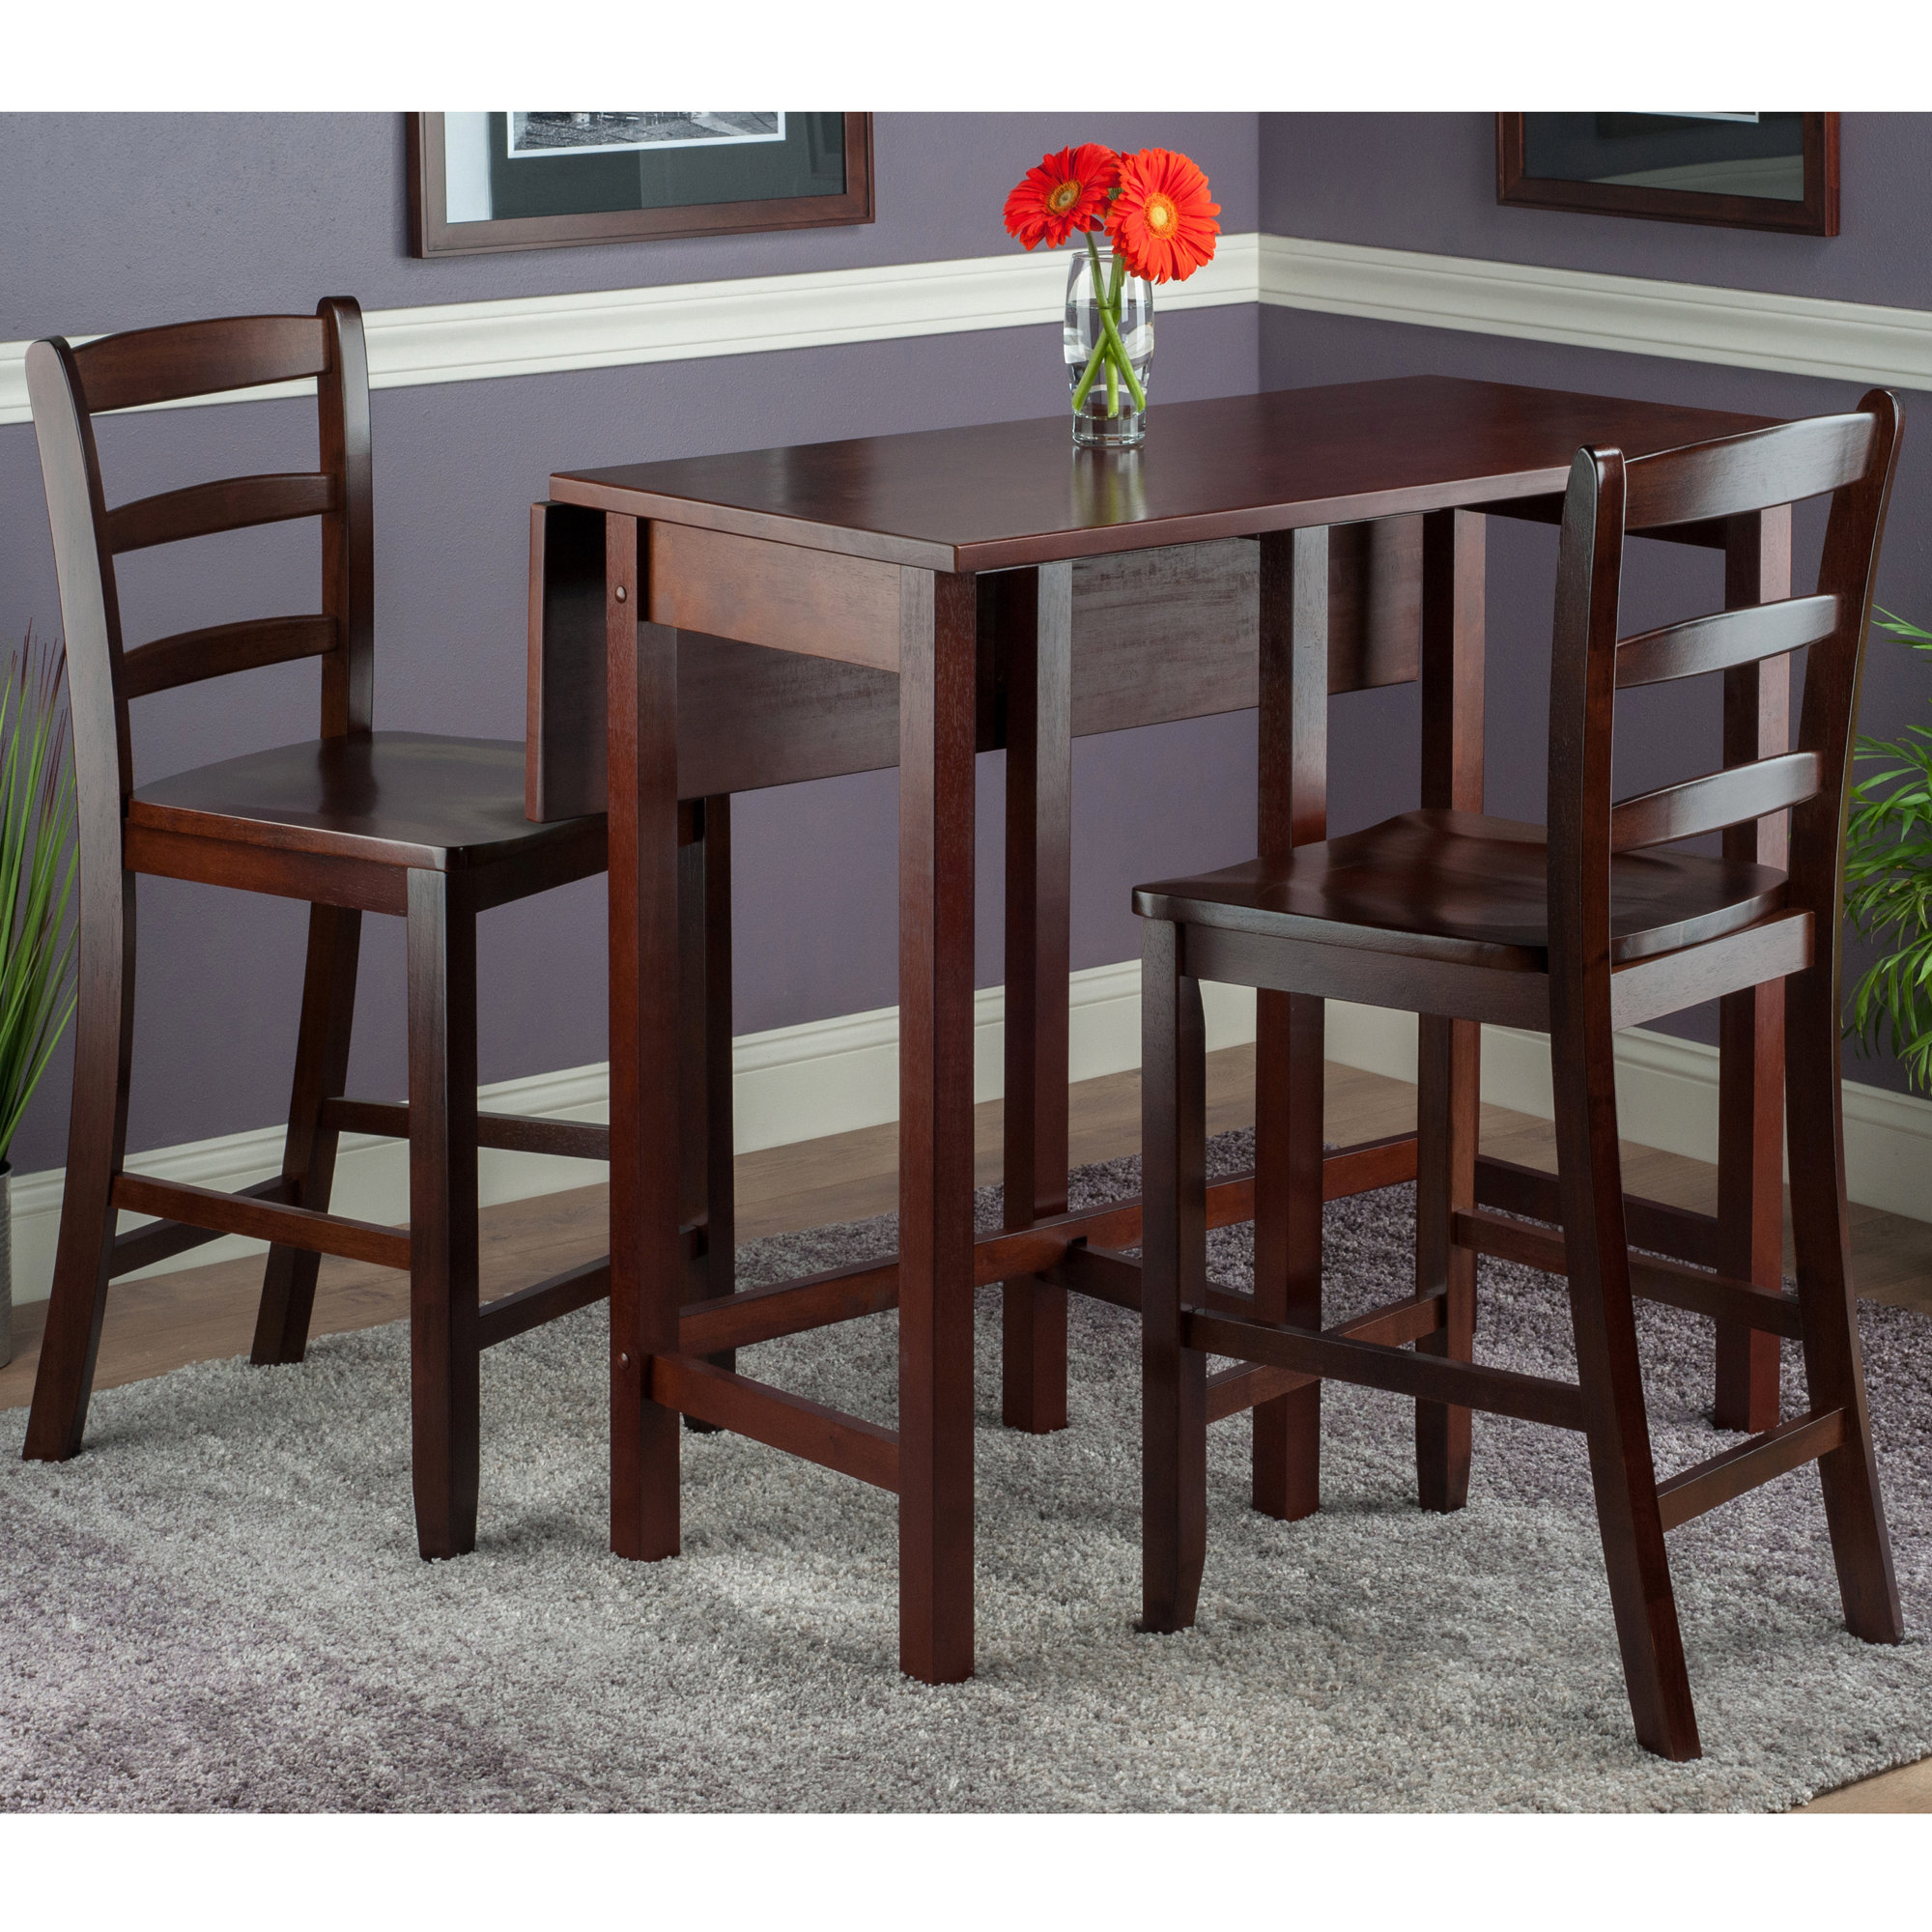 Bettencourt 3 Piece Drop Leaf Dining Set Intended For Most Current Kerley 4 Piece Dining Sets (Image 2 of 20)